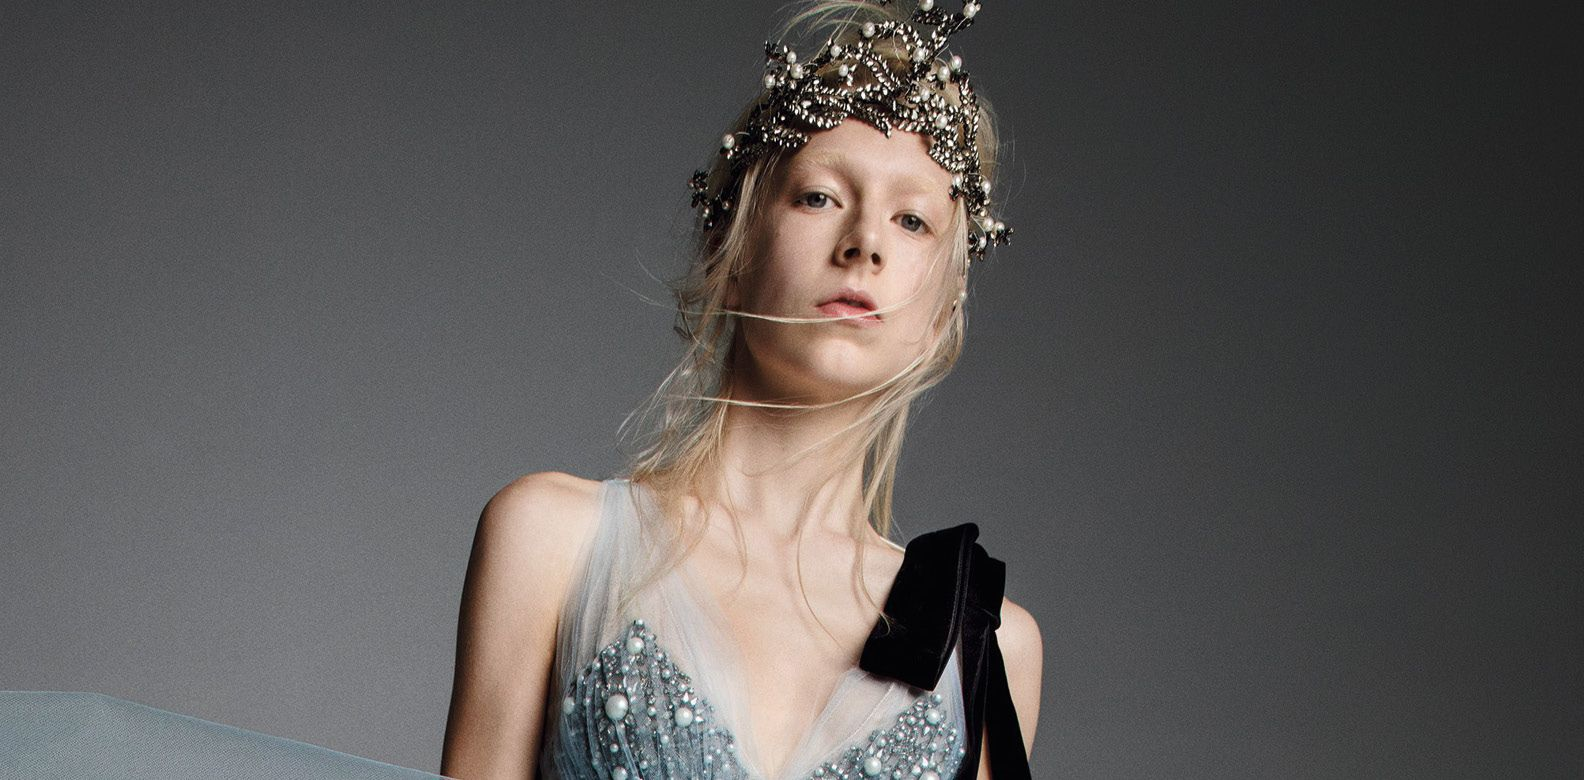 This Vera Wang look is completed with a statement-making tiara